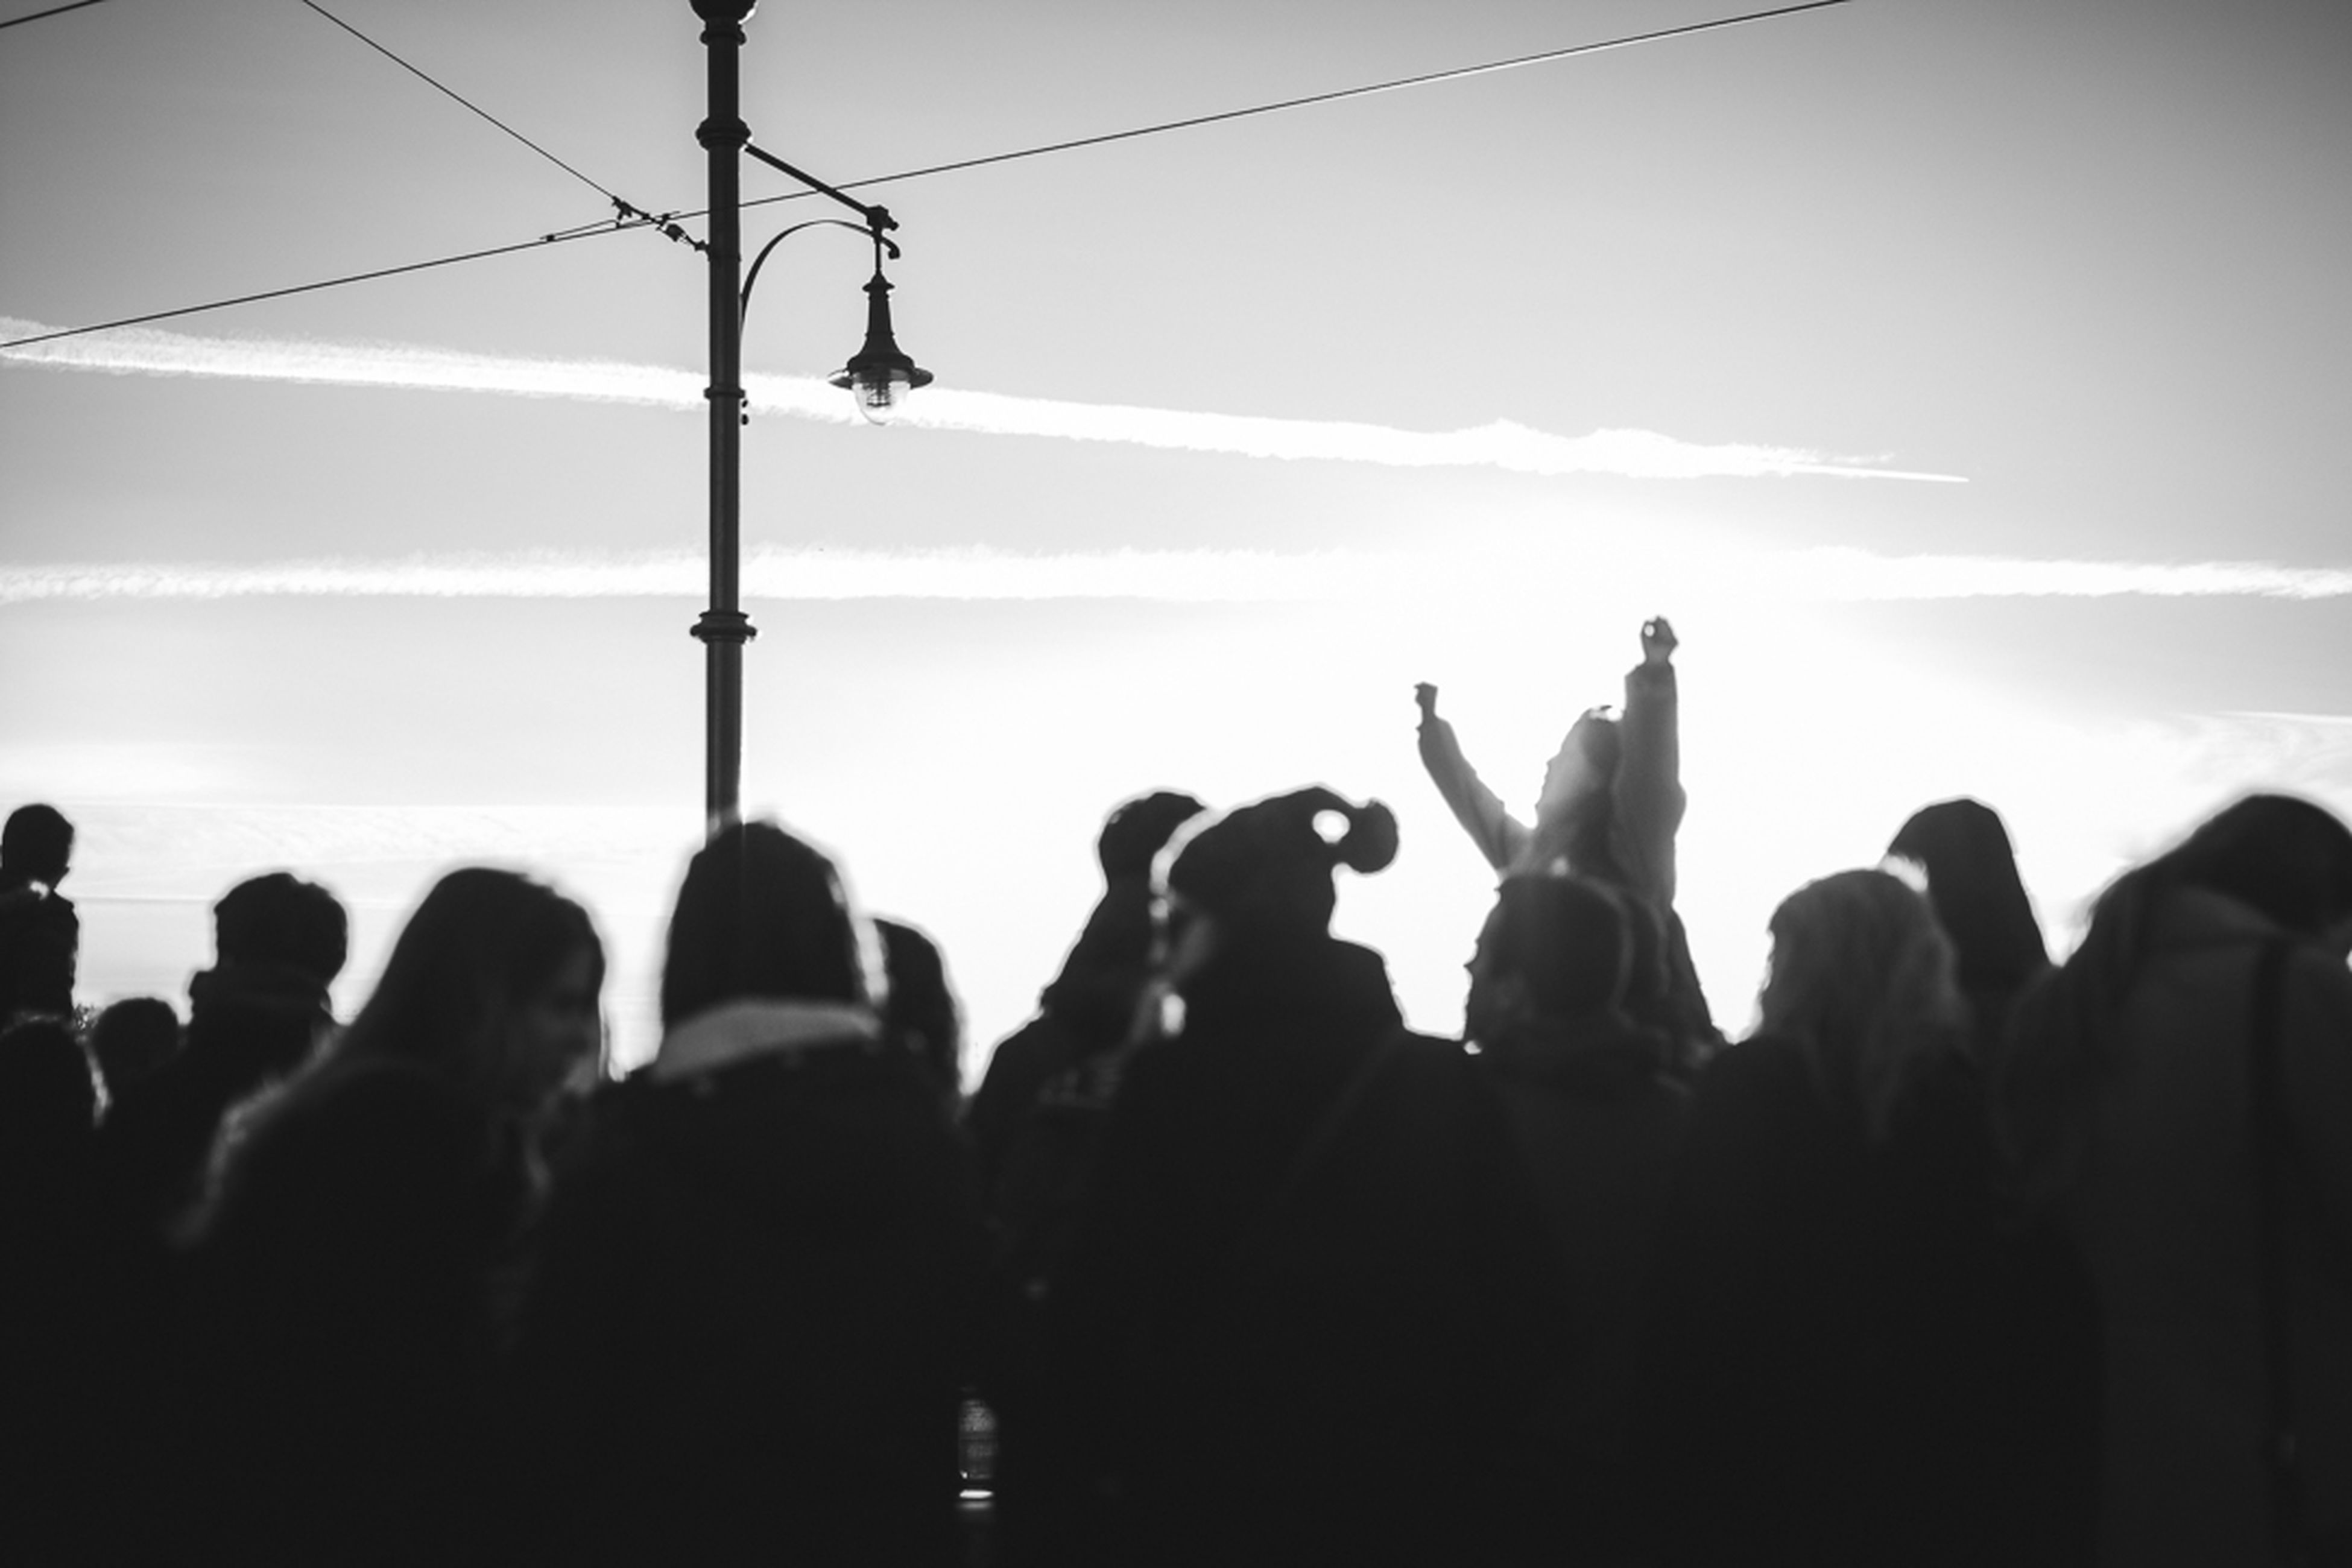 silhouette, men, large group of people, lifestyles, person, leisure activity, sky, togetherness, crowd, performance, standing, enjoyment, sunset, outline, outdoors, medium group of people, technology, arts culture and entertainment